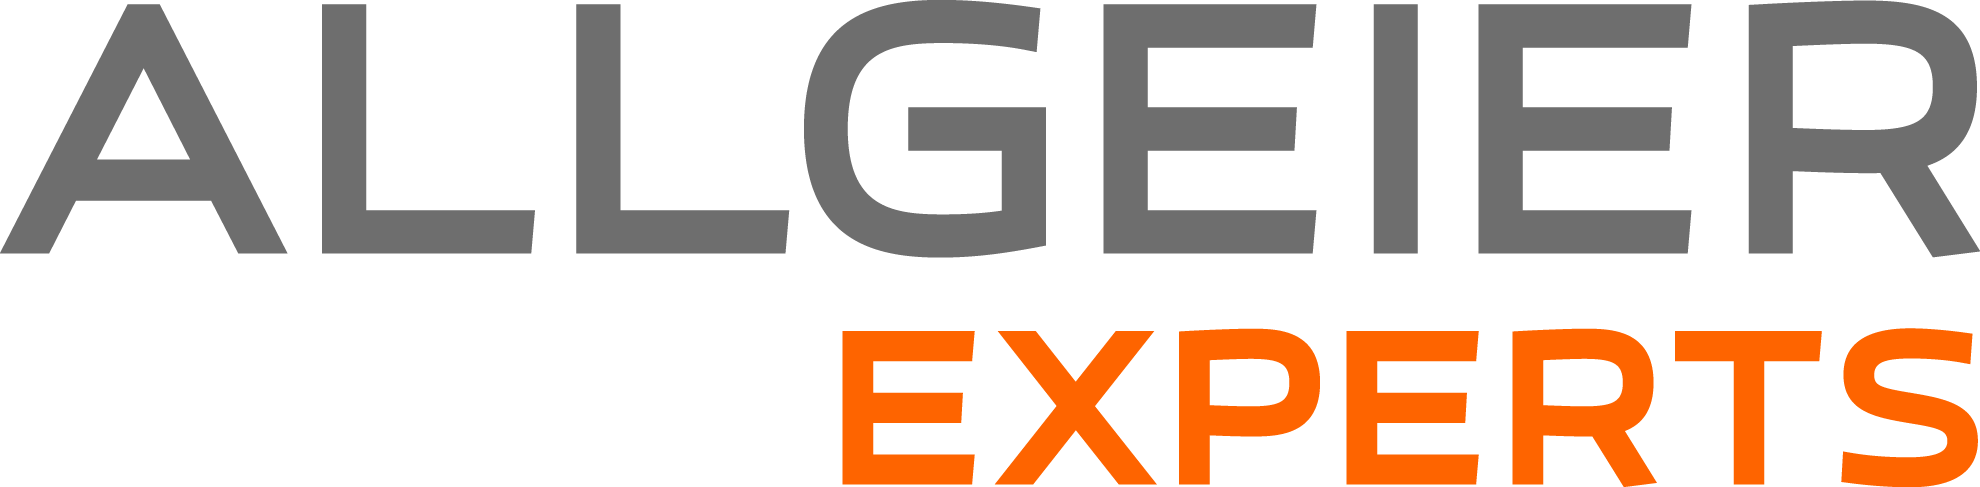 xAllgeier-experts_Logo_RGB.png.pagespeed.ic.Zy0cArKbyz